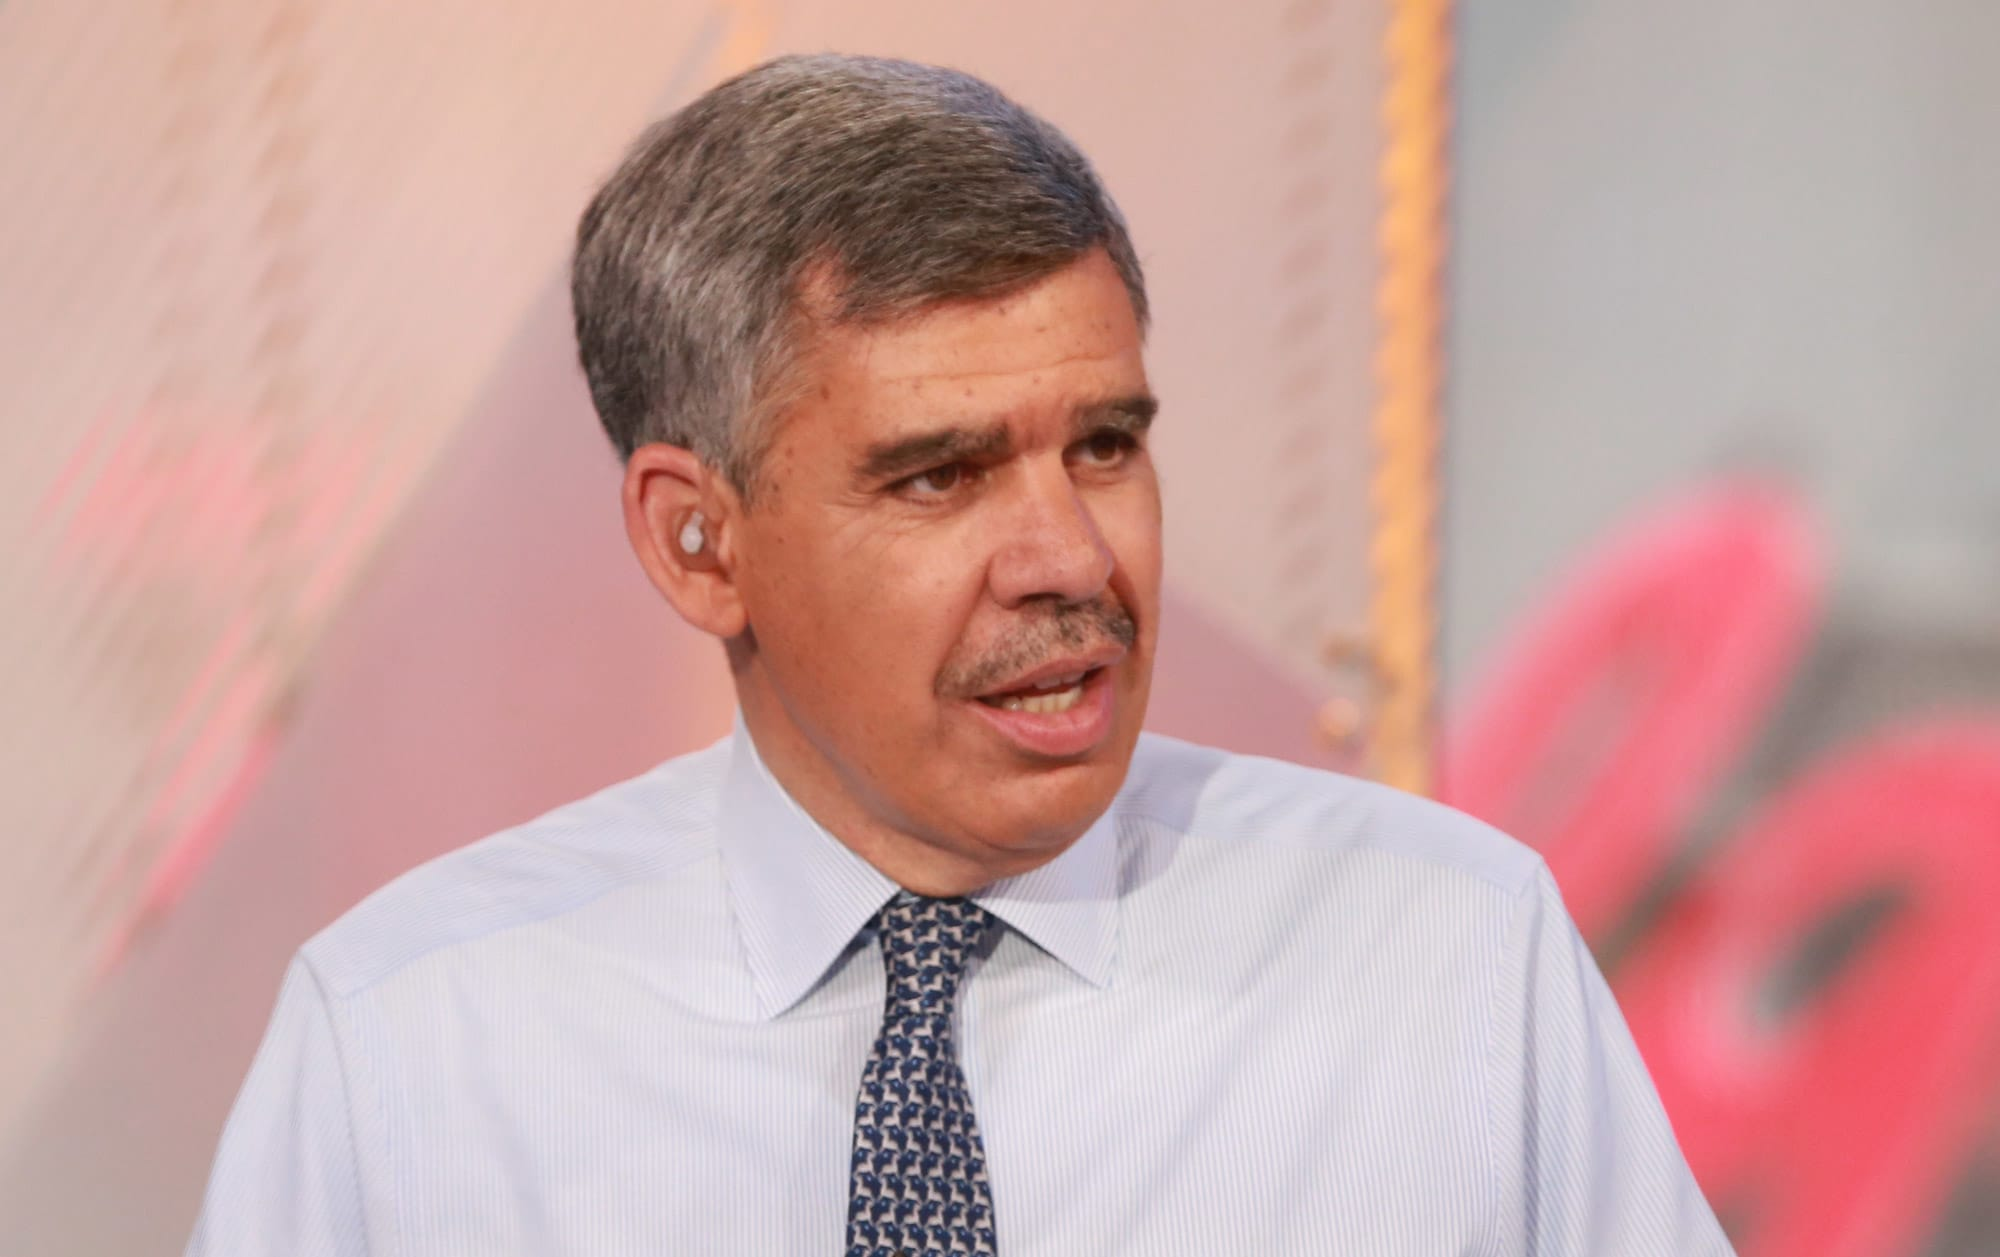 Economist El-Erian: Fed now has no choice but to cut rates or risk disrupting markets